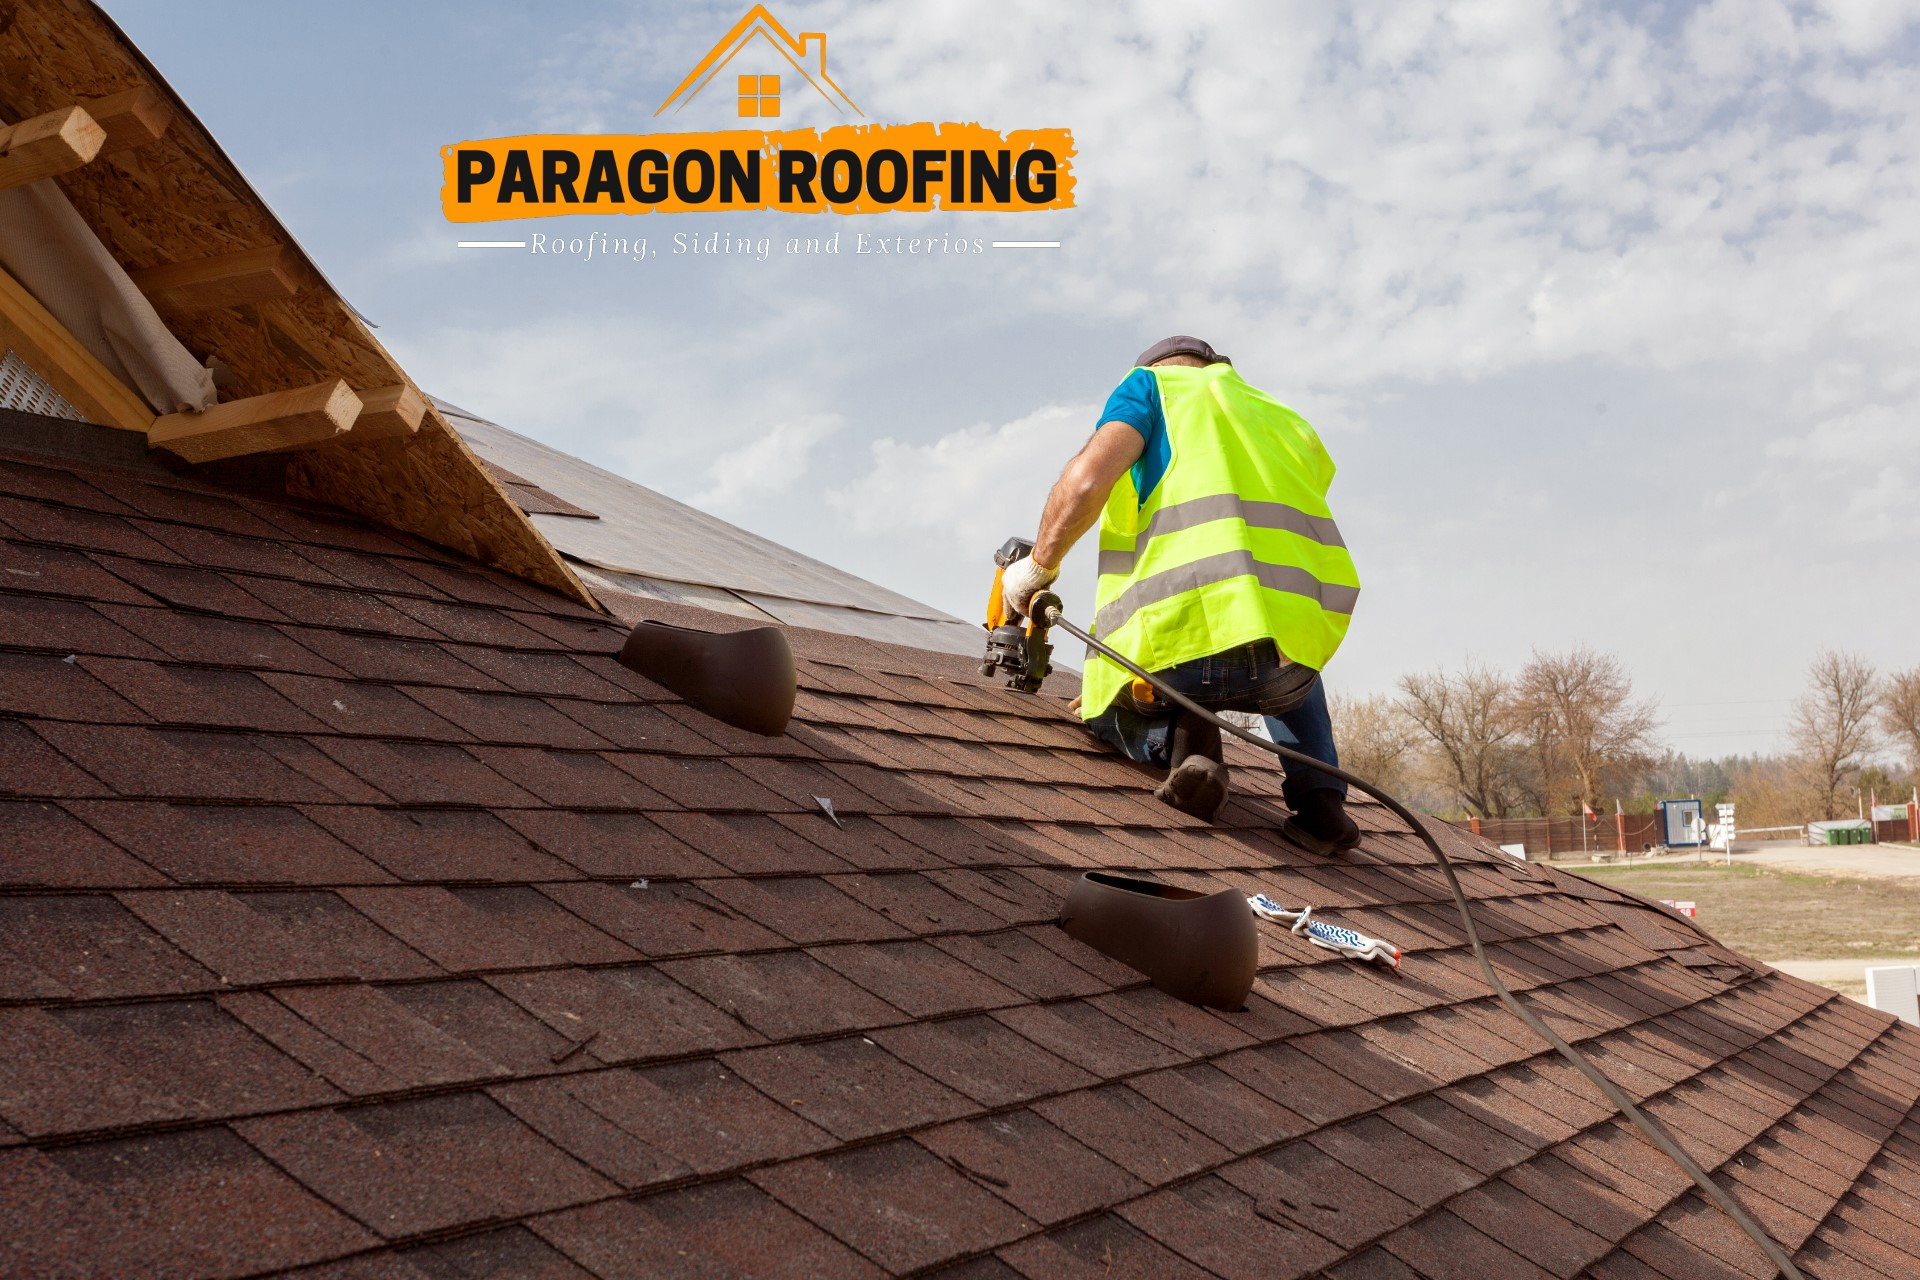 Paragon Roofing - Roof Repair Service